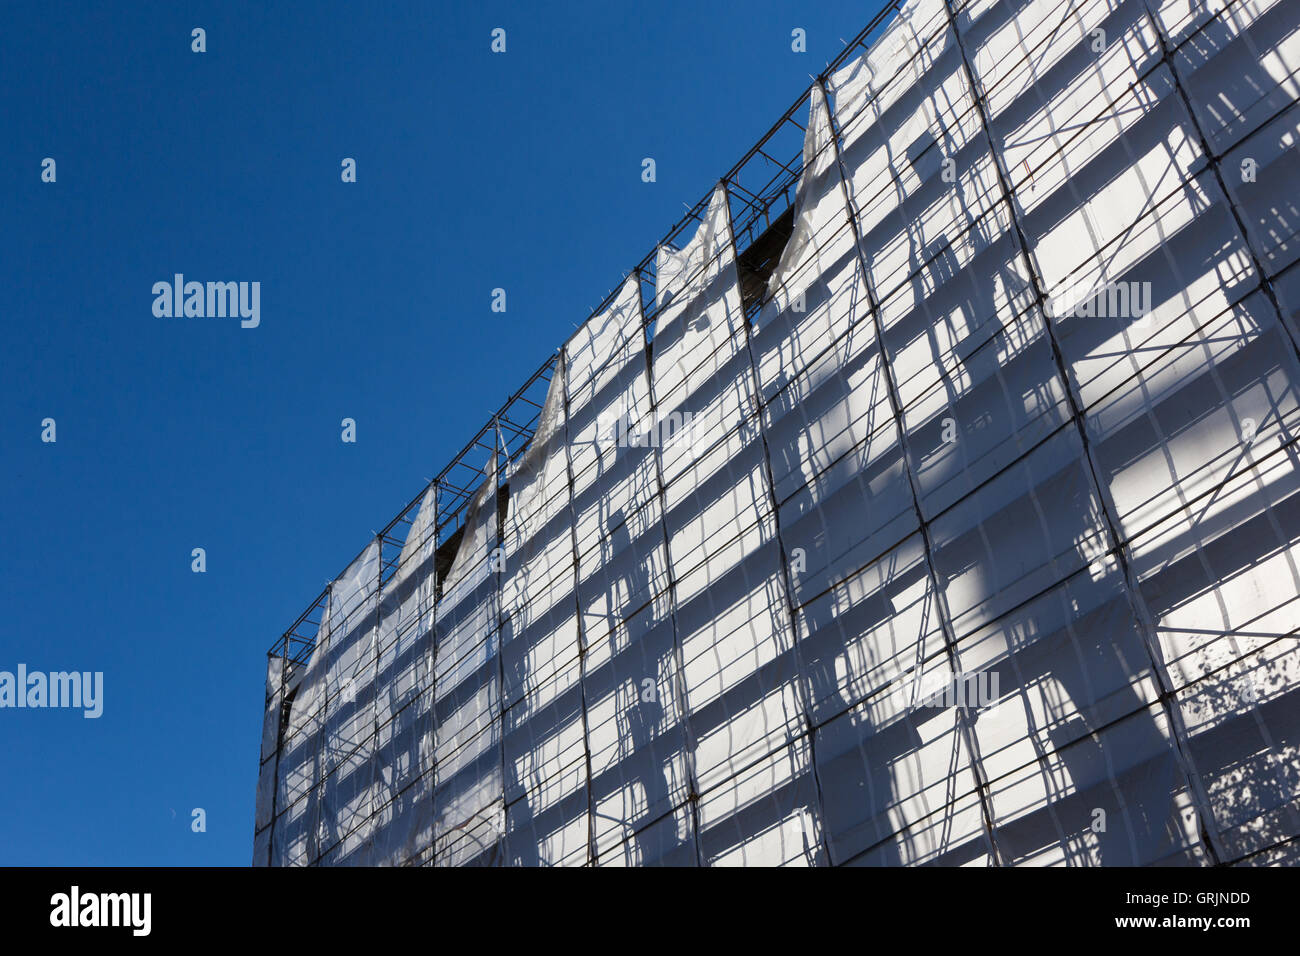 construction industry  building with scaffolding silhouette - Stock Image